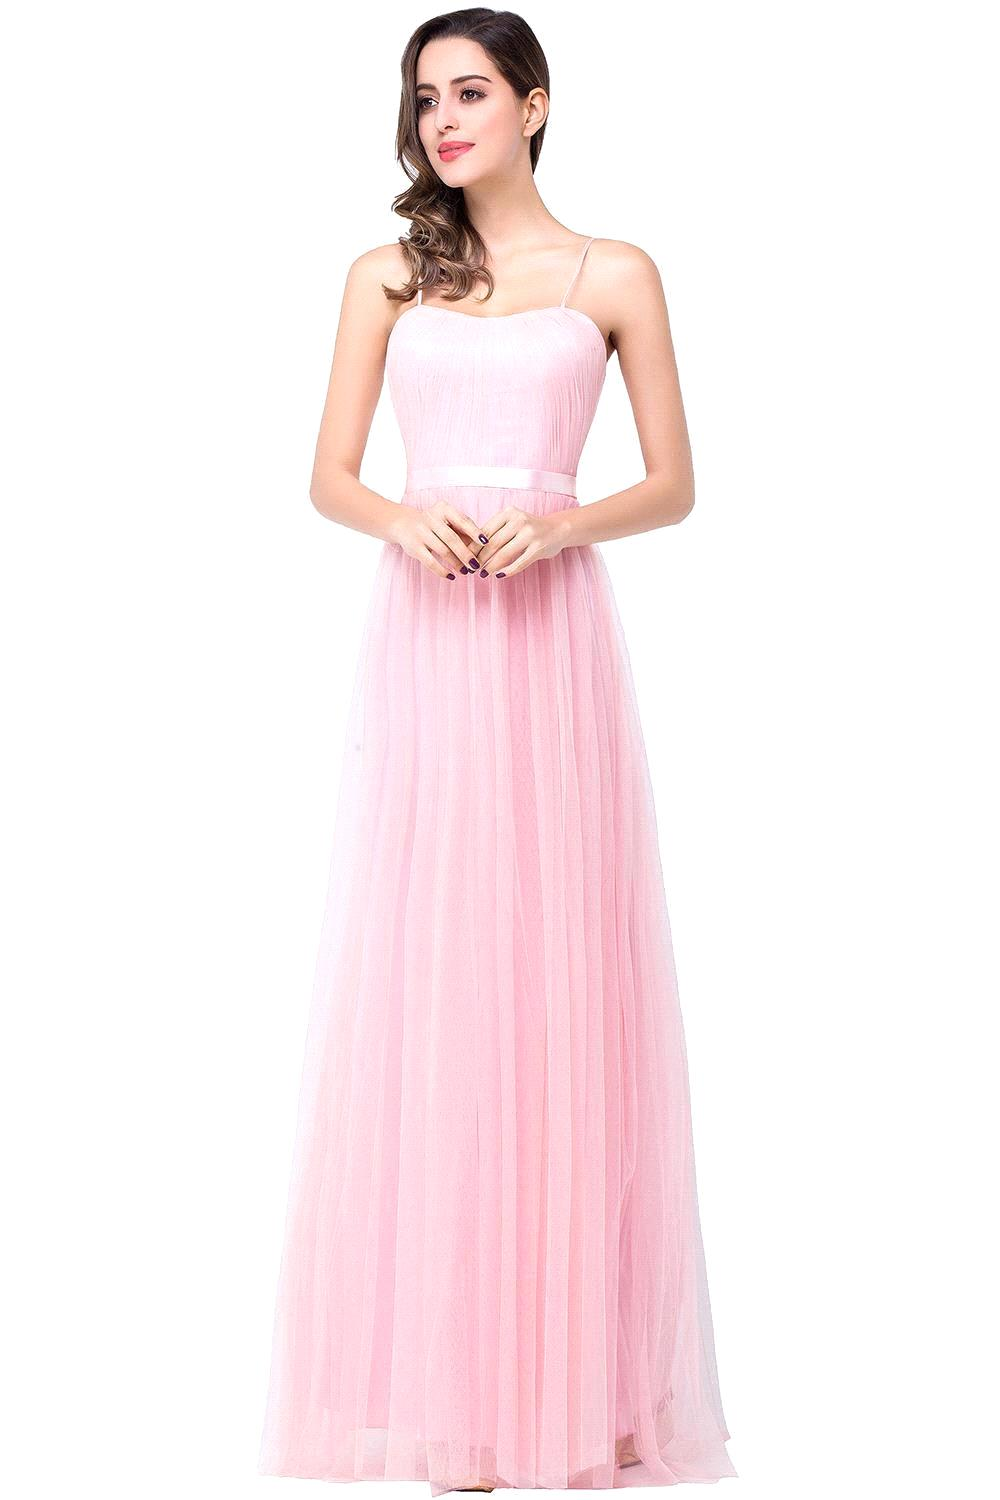 Buy mix order 4 styles pink bridesmaid for Dresses for wedding bridesmaid